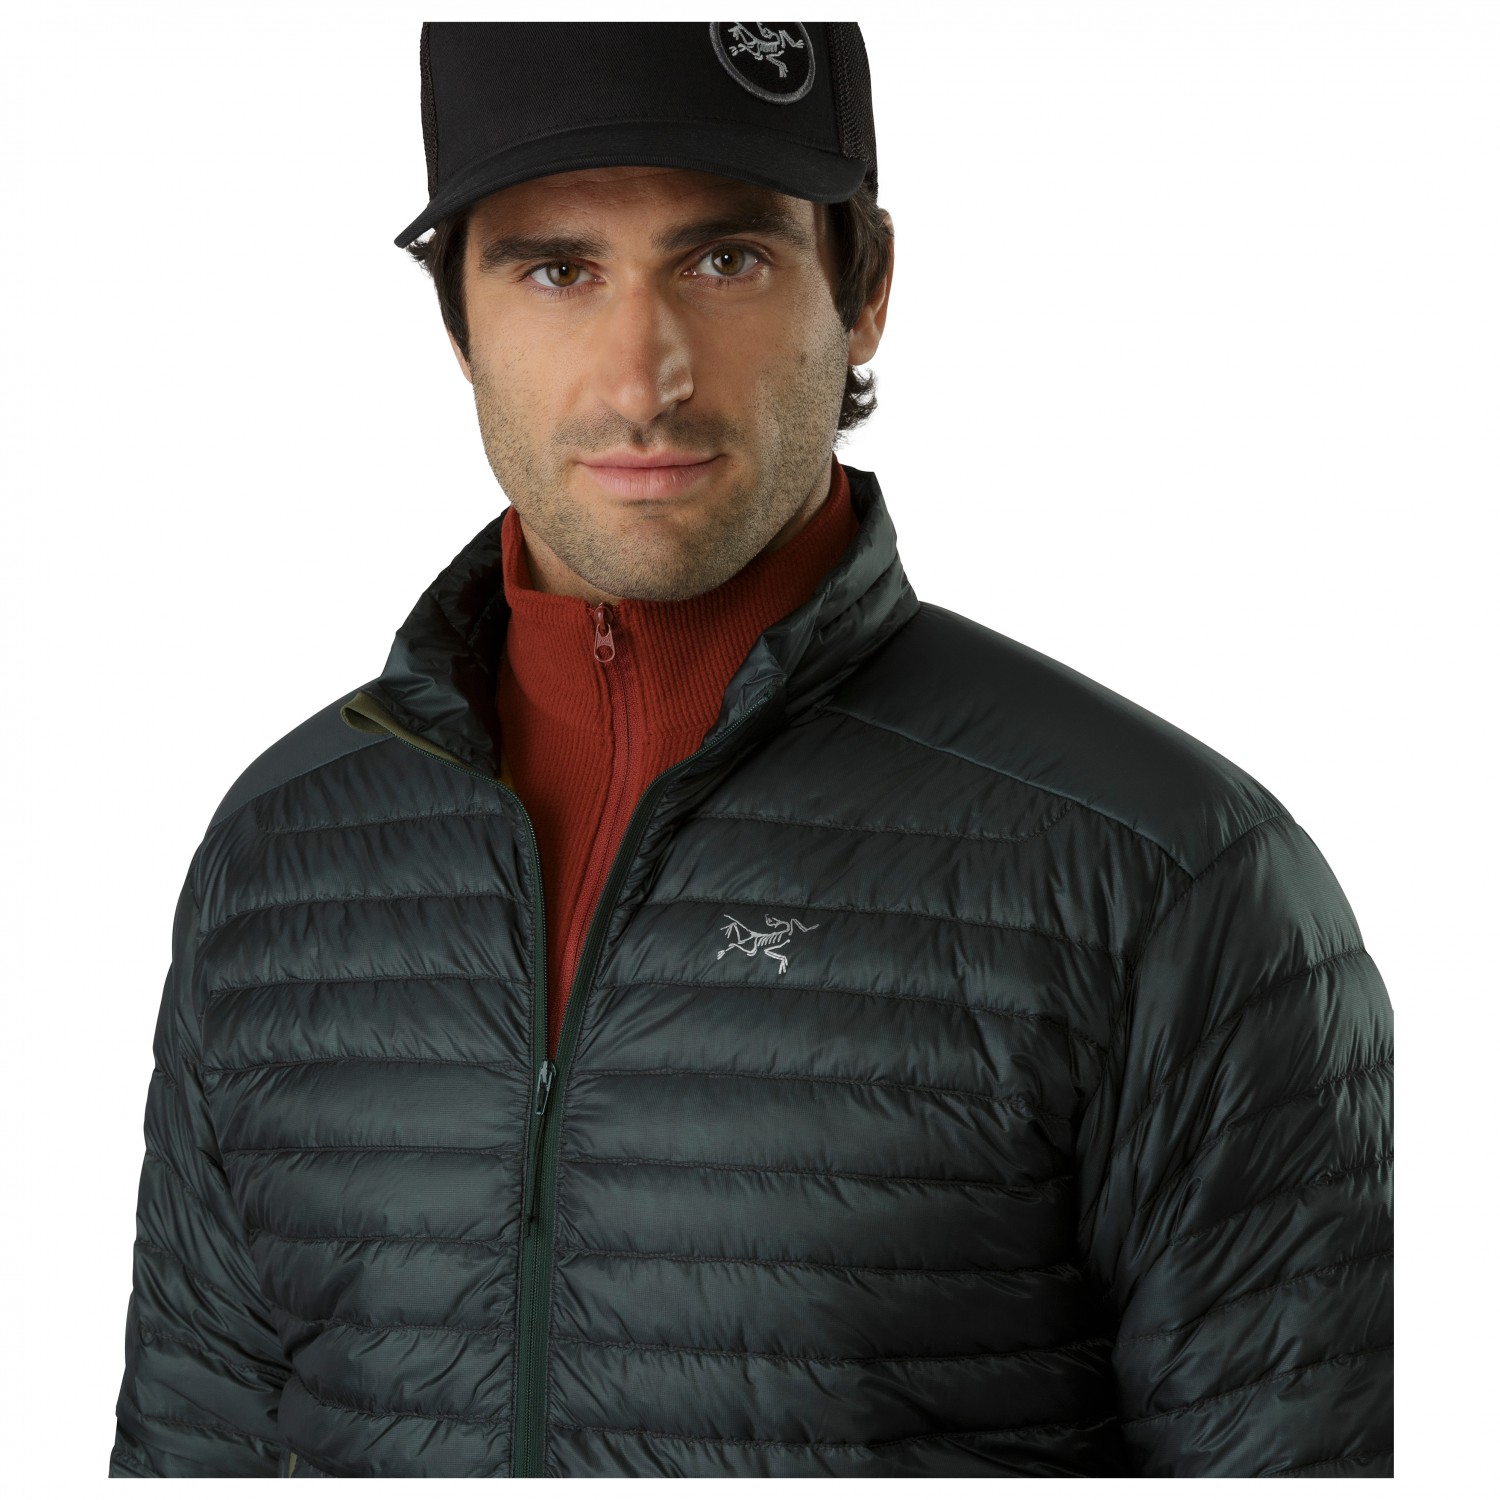 Sl Uk Men's Arc'teryx Down Cerium Delivery Jacket Free BwC5Yzq5